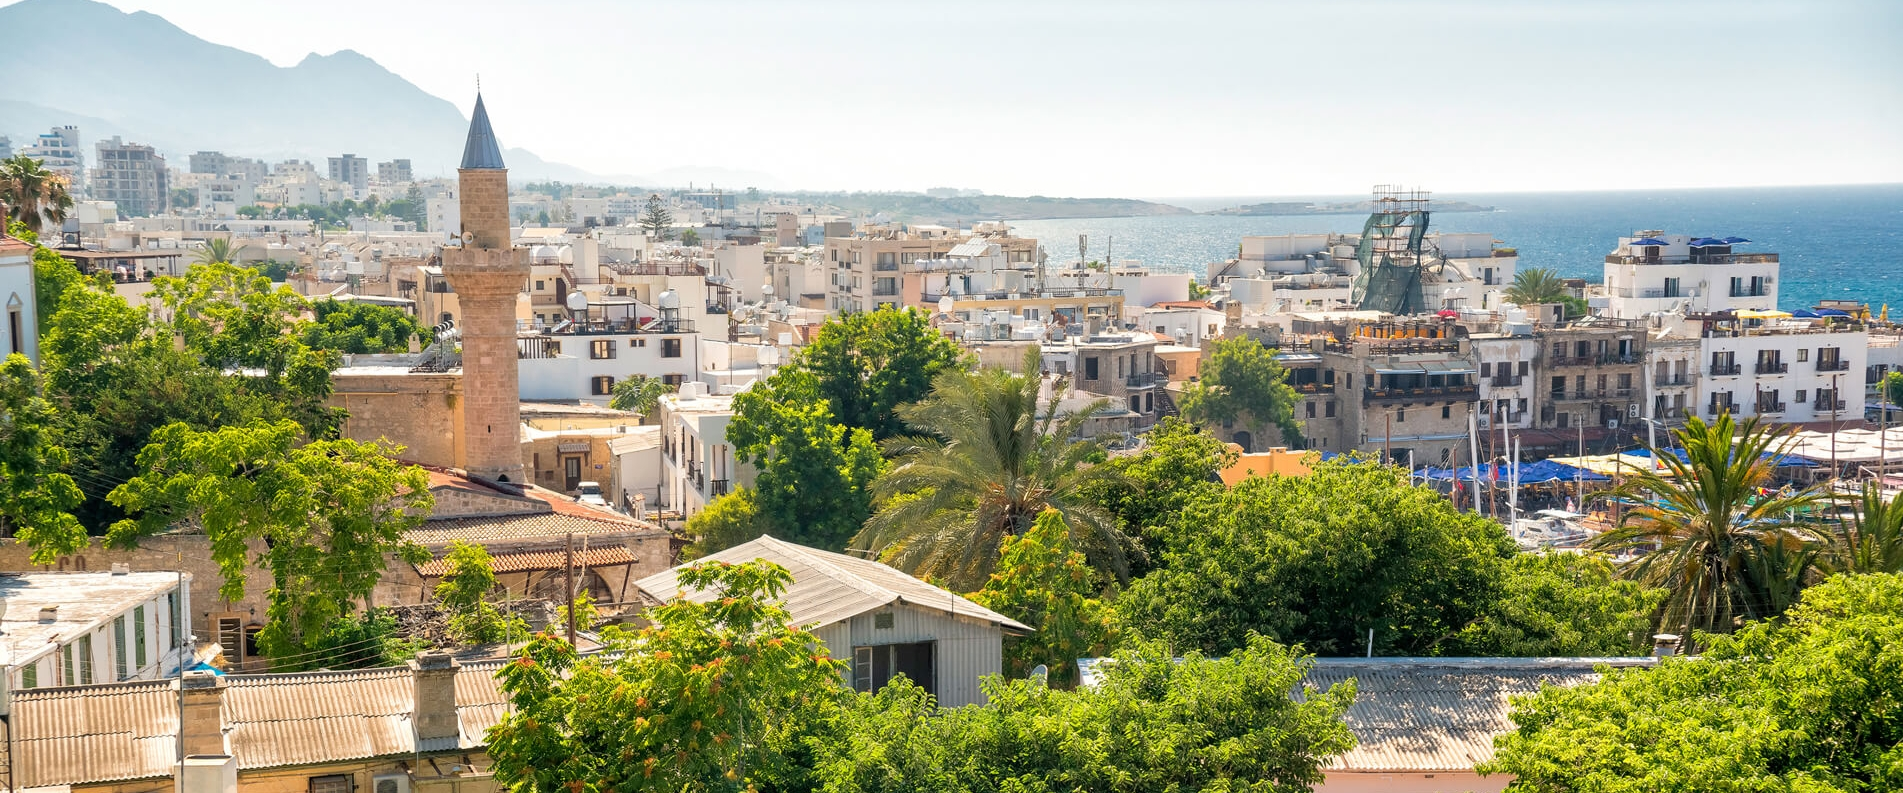 Things to do and see in the part of Cyprus occupied by Turkey